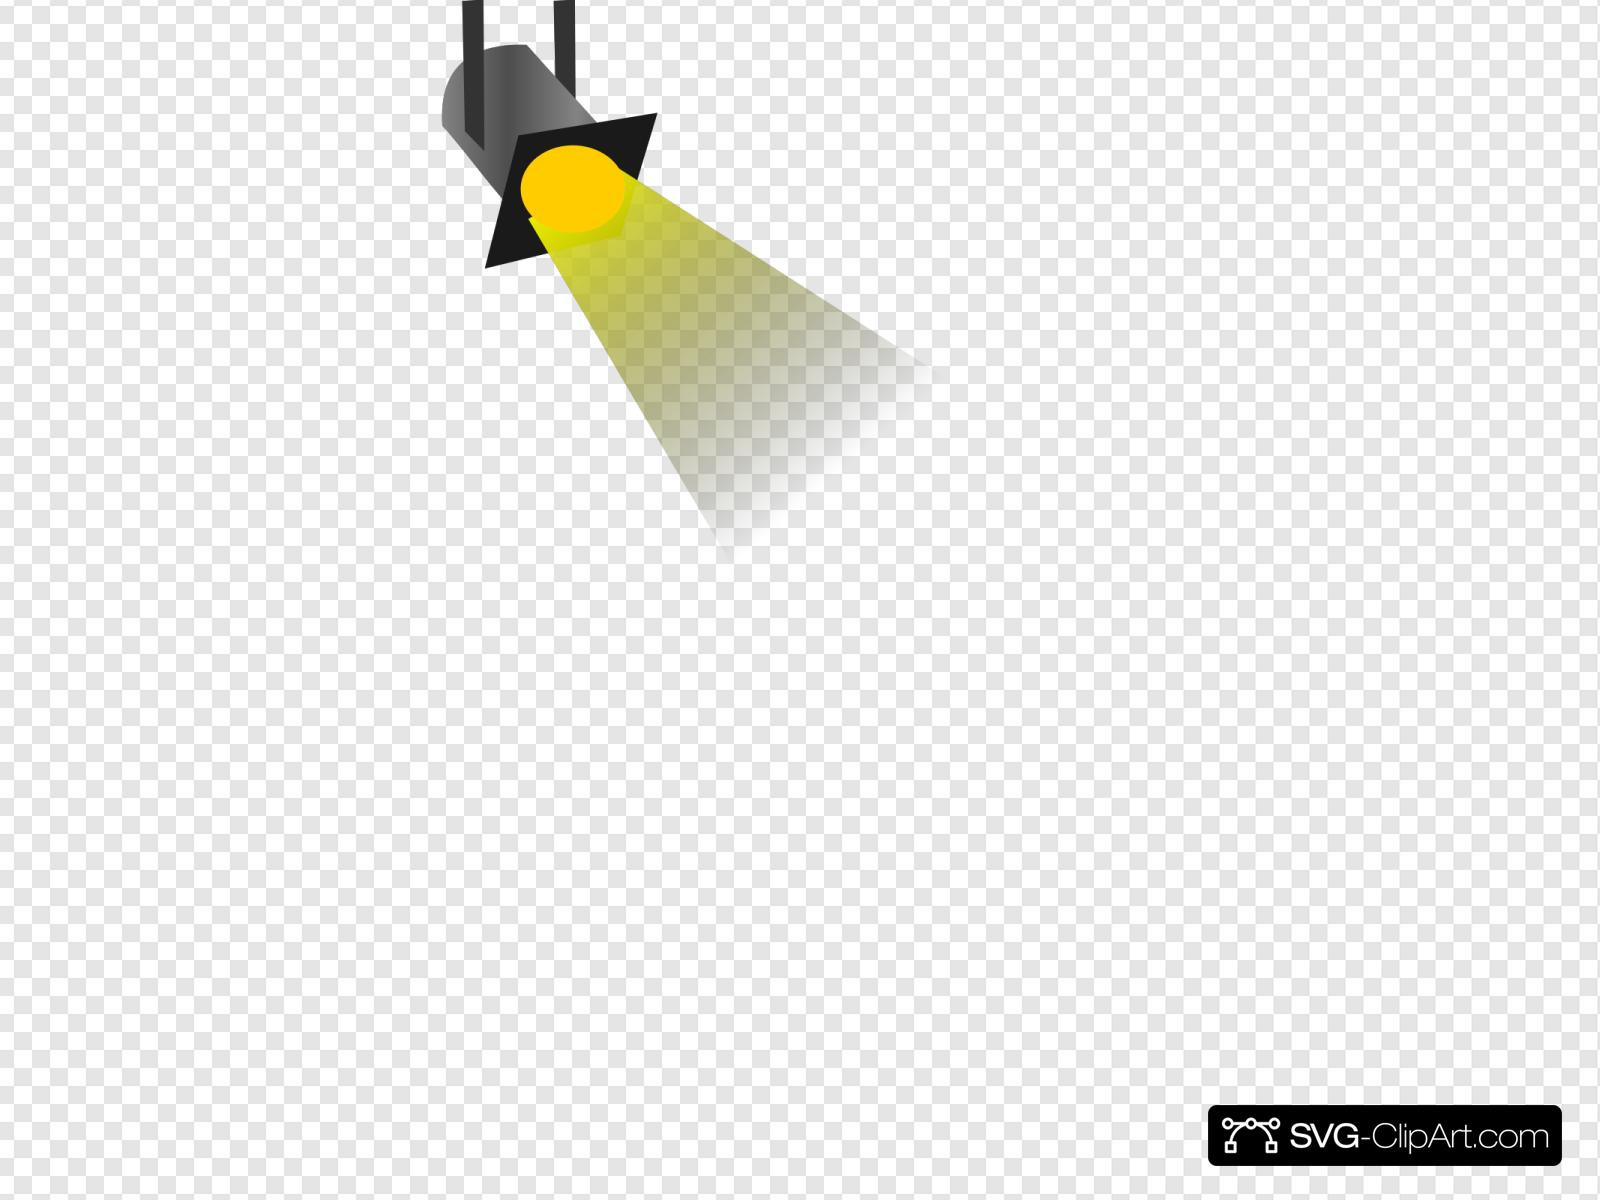 Theatre Lighting Svg Vector Theatre Lighting Clip Art Svg Clipart